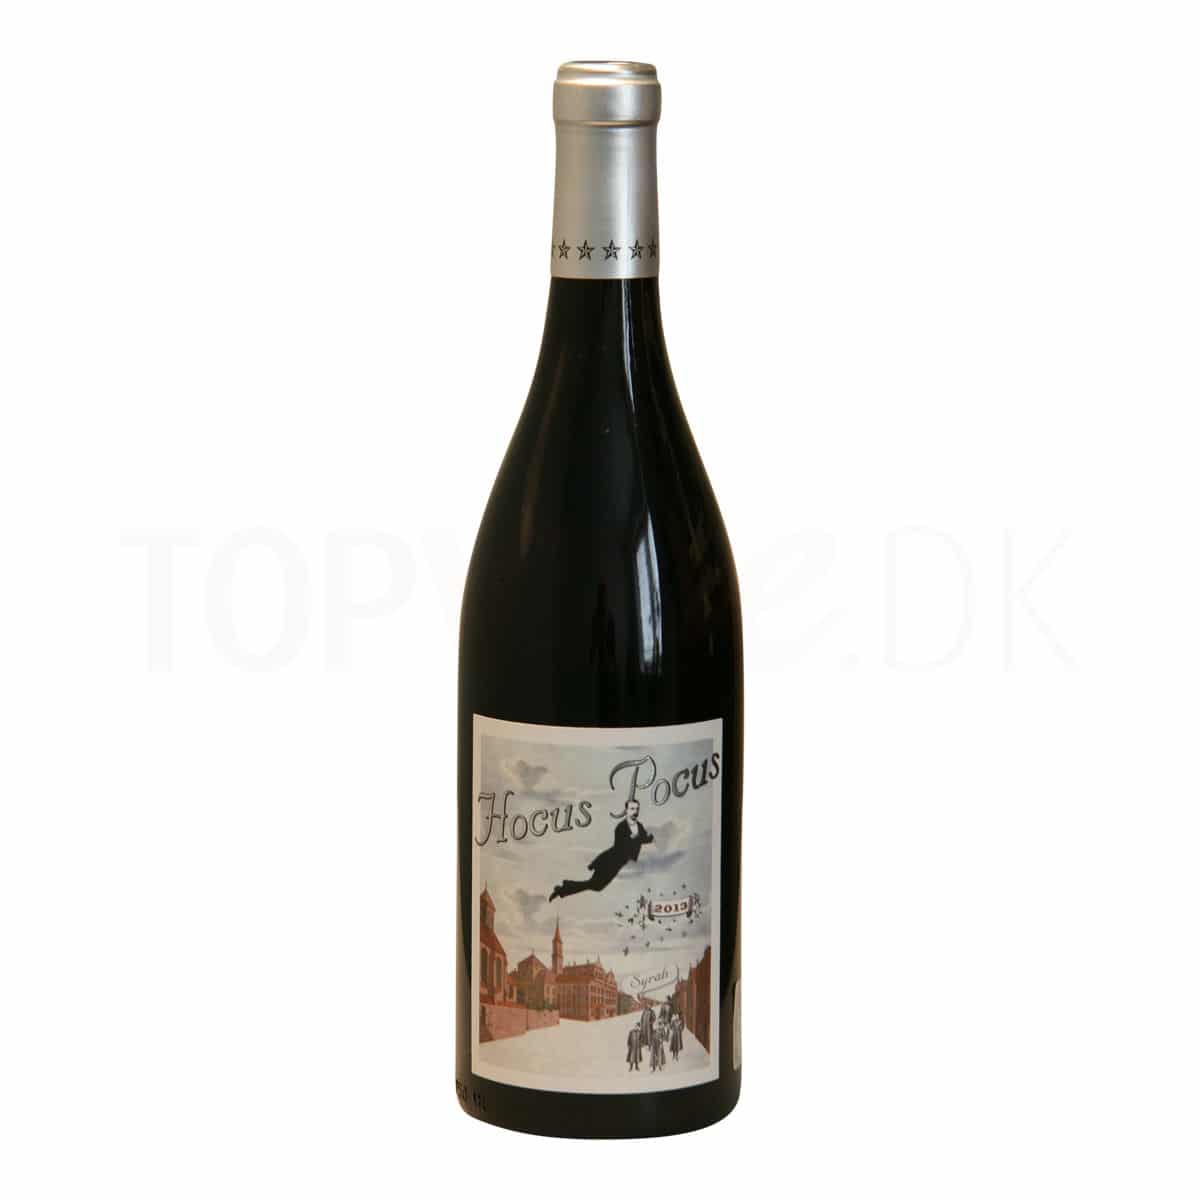 Topvine Black Sheep Finds- Hocus Pokus Syrah